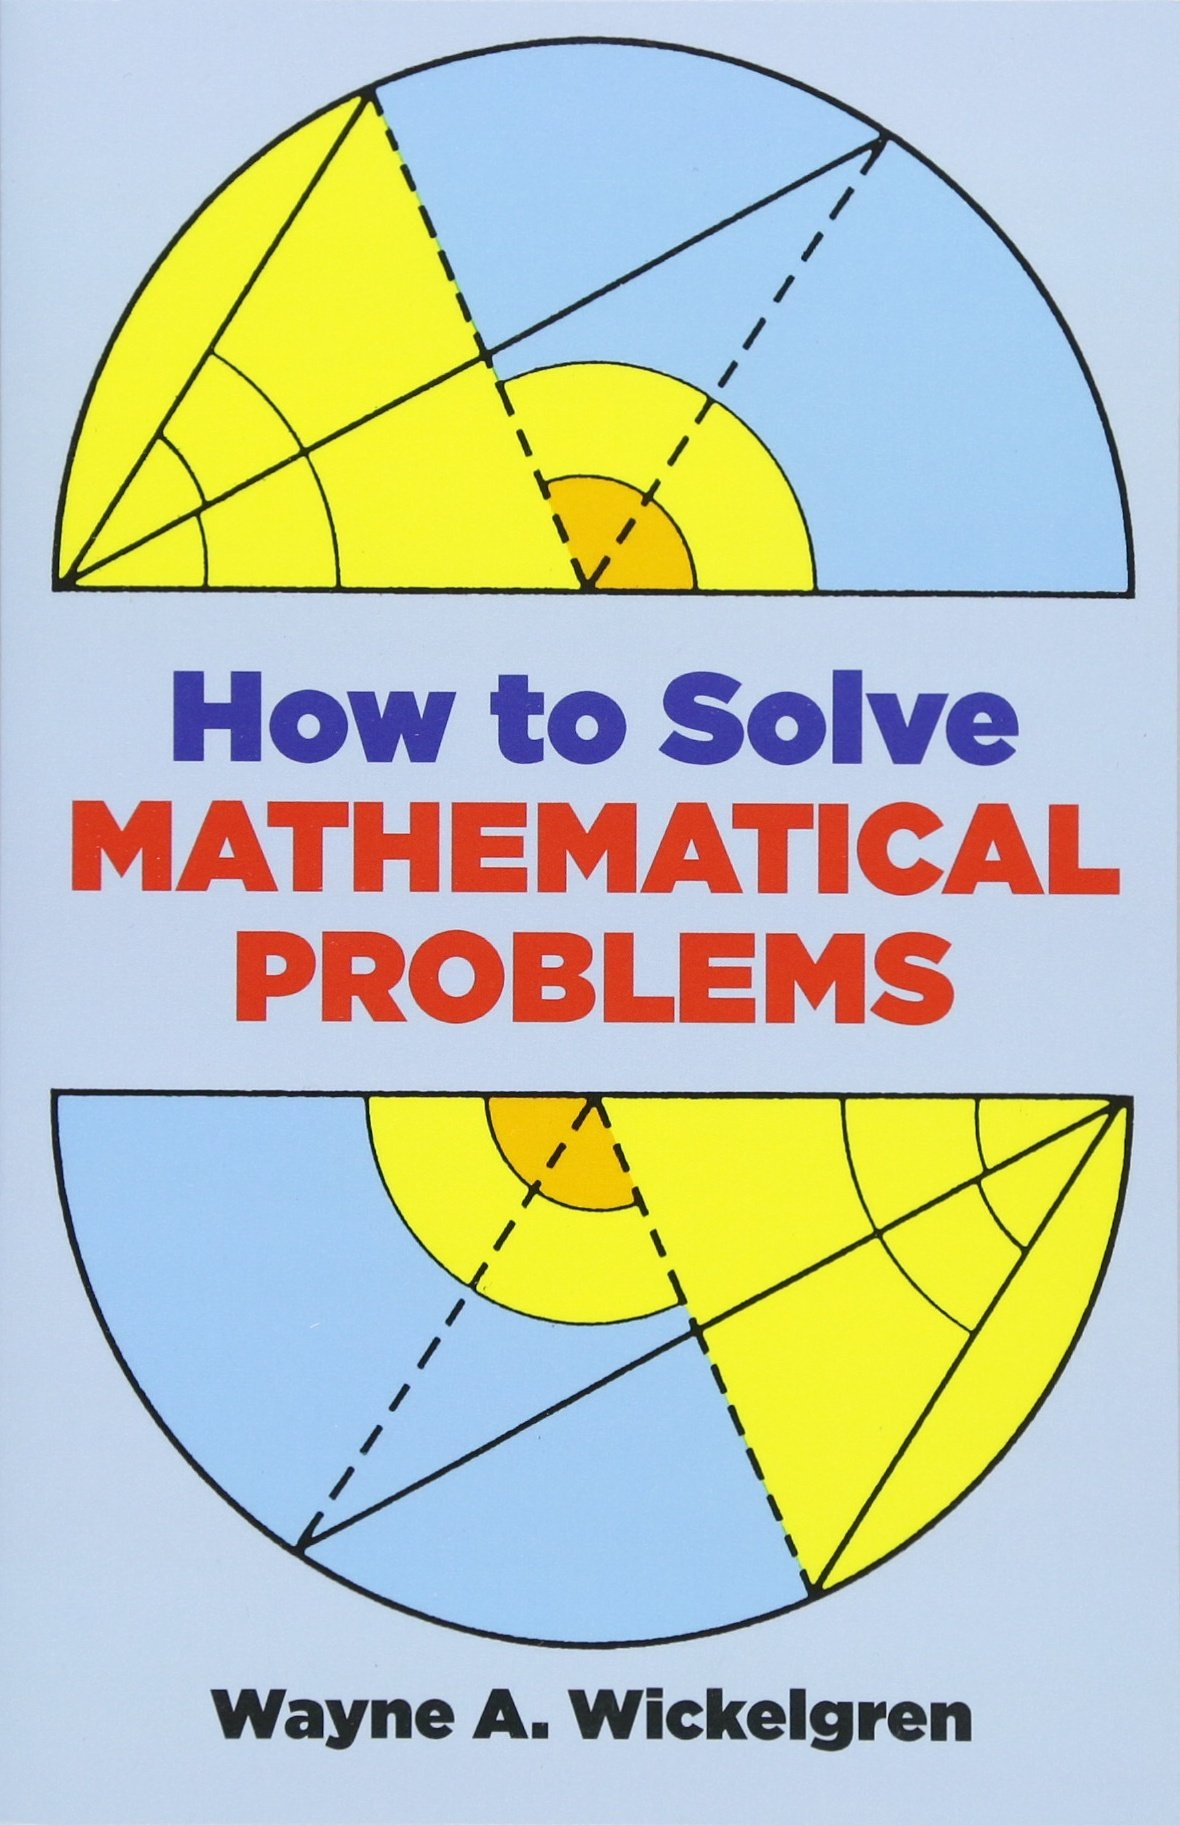 how to solve math problems quickly